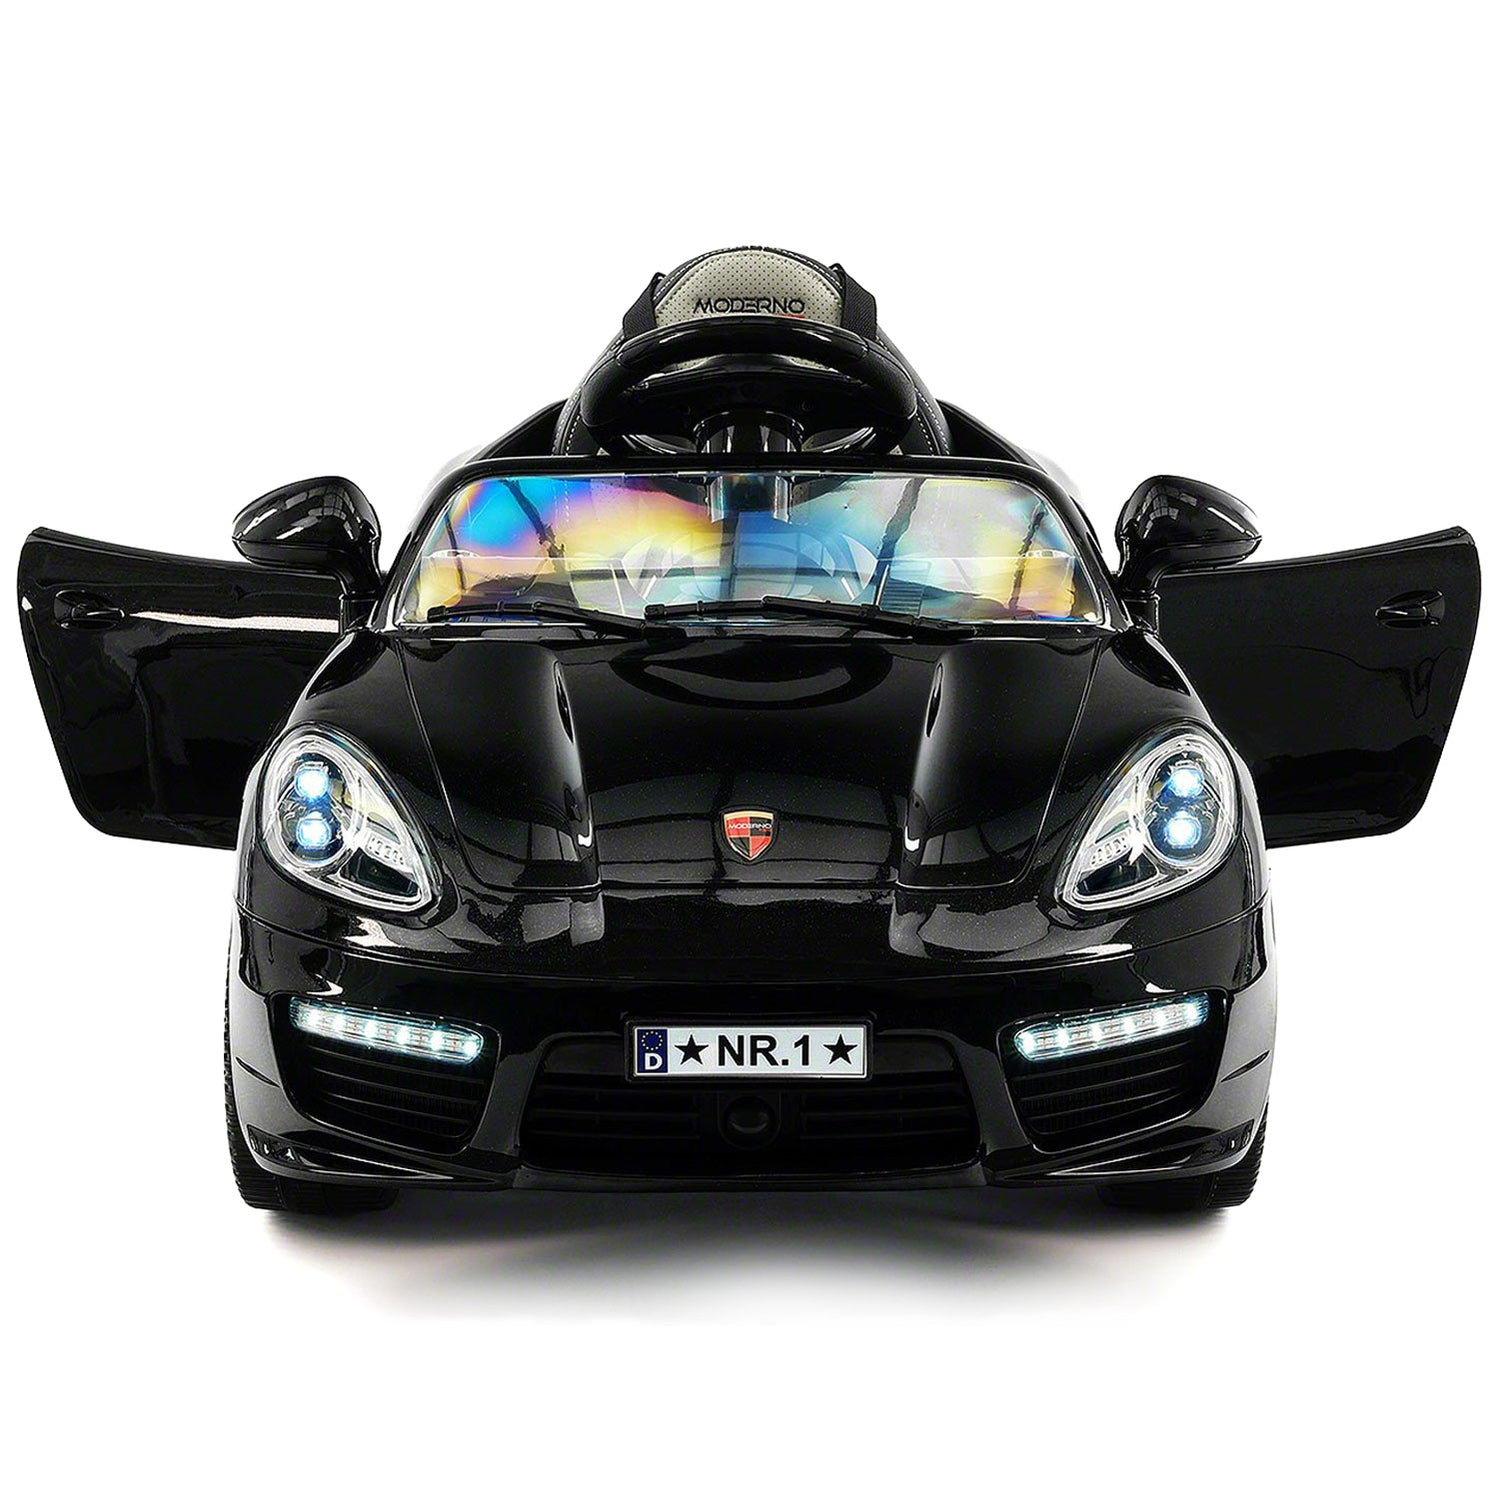 kiddie roadster 12v kids electric ride on car with rc parental remote black metallic